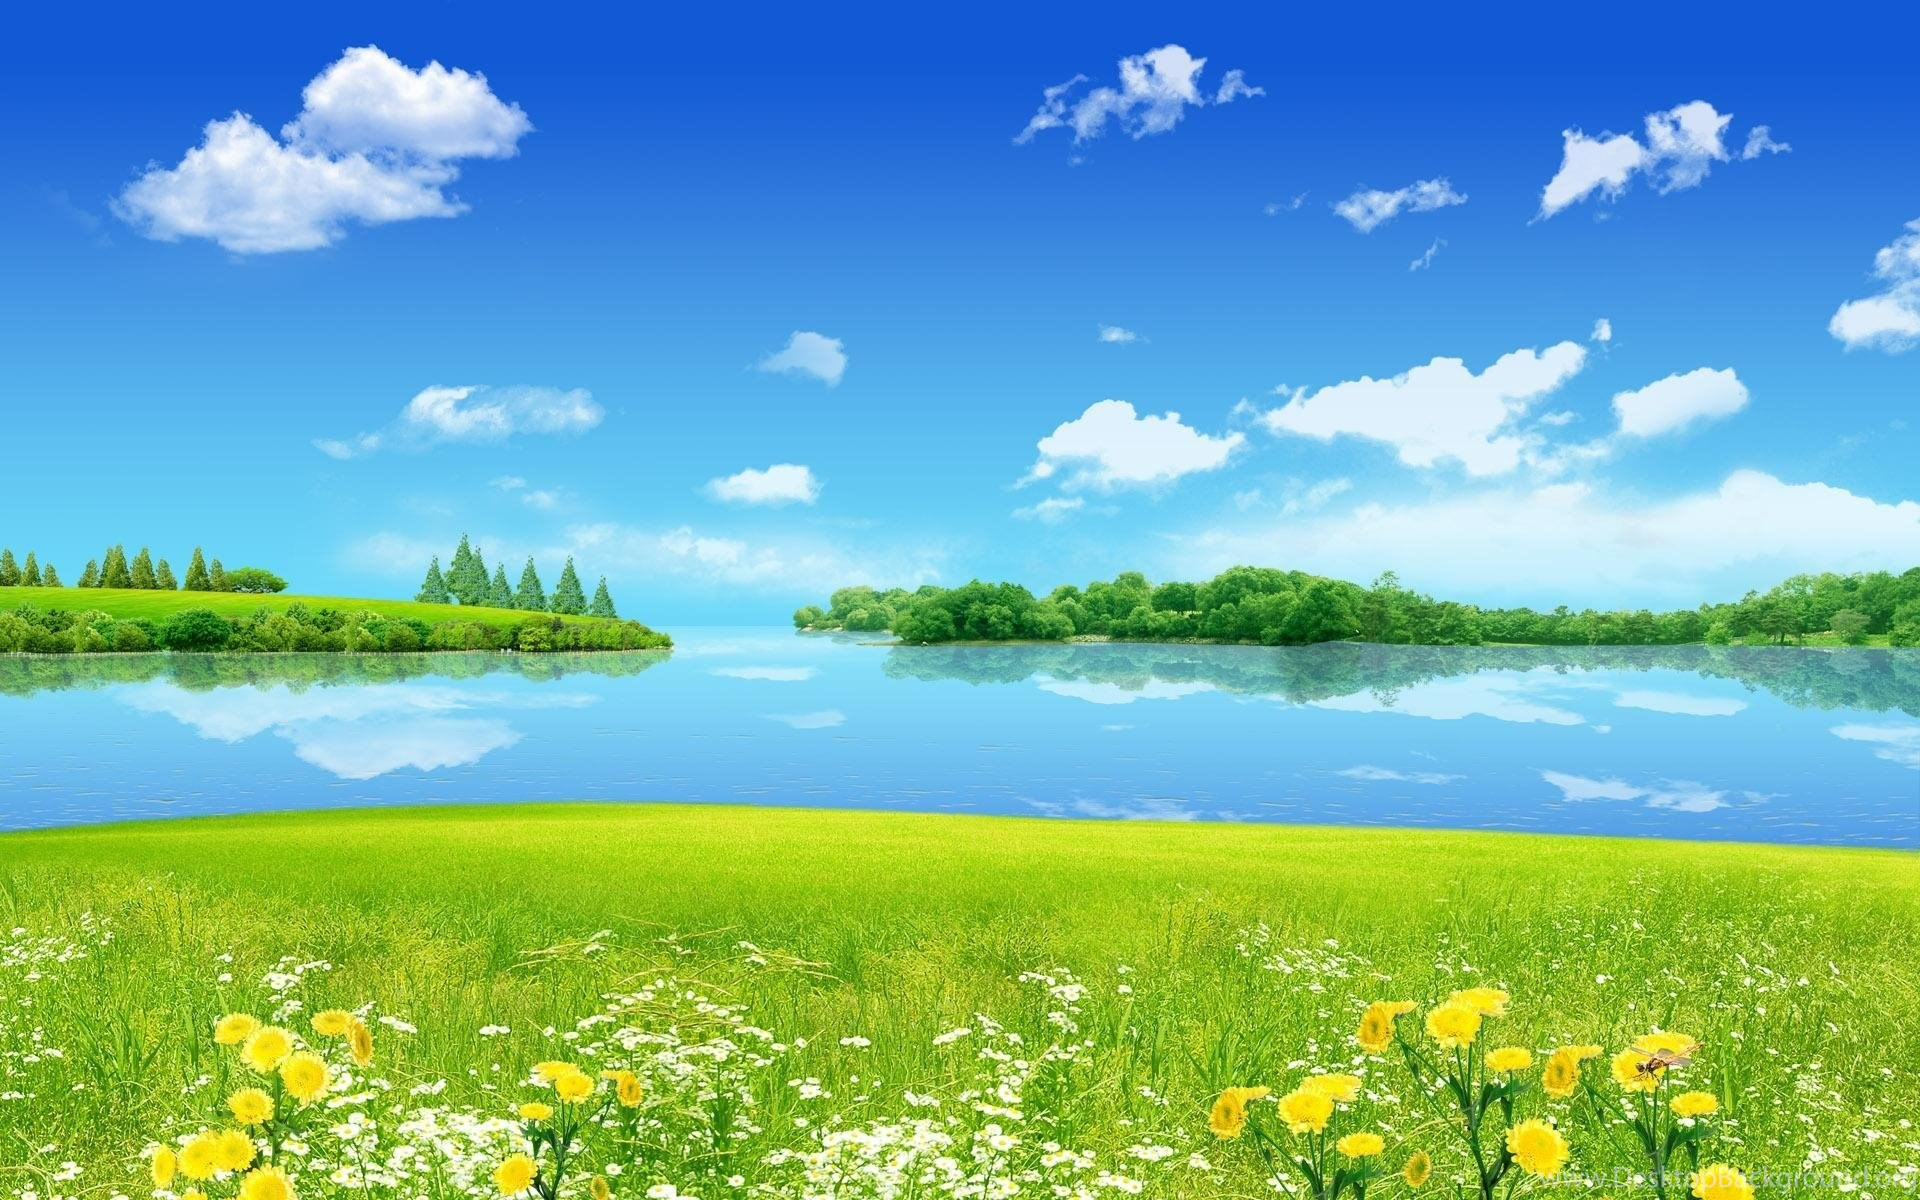 Summer Photography Backgrounds Hd Backgrounds 8 Hd Wallpapers Desktop Background